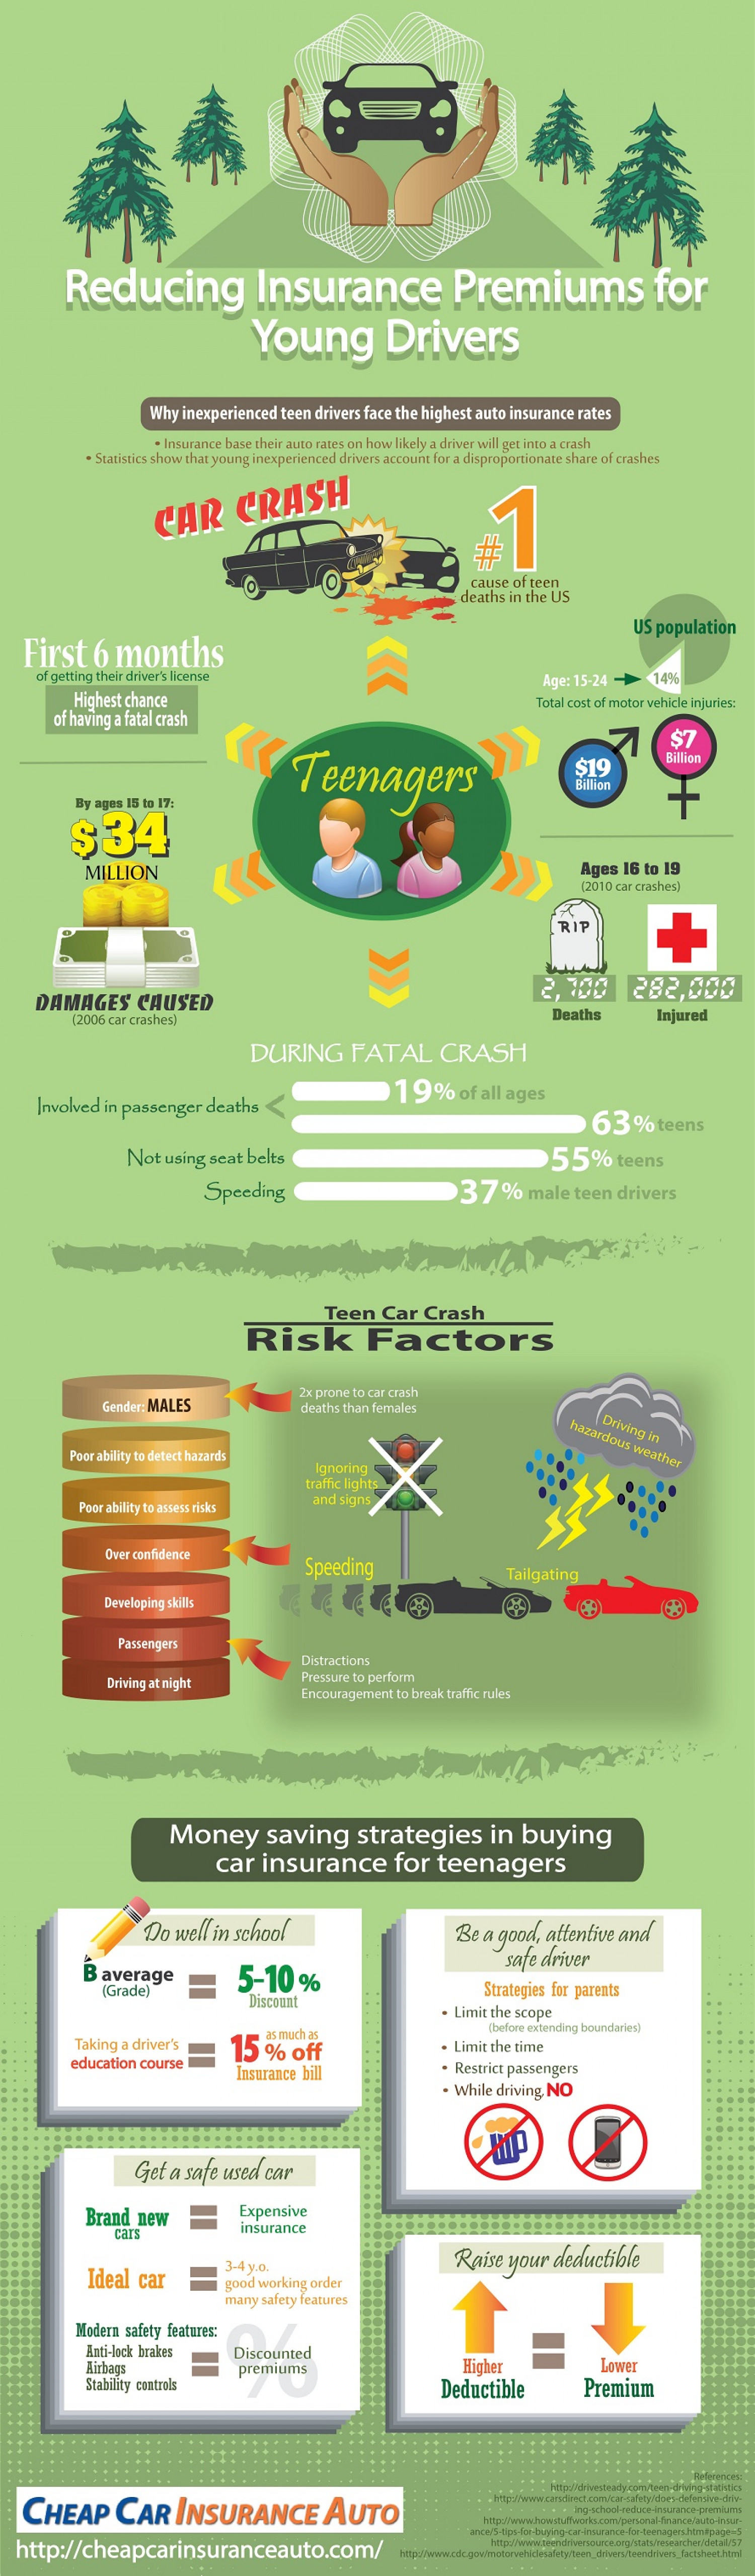 Reducing Insurance Premiums for Young Drivers Infographic